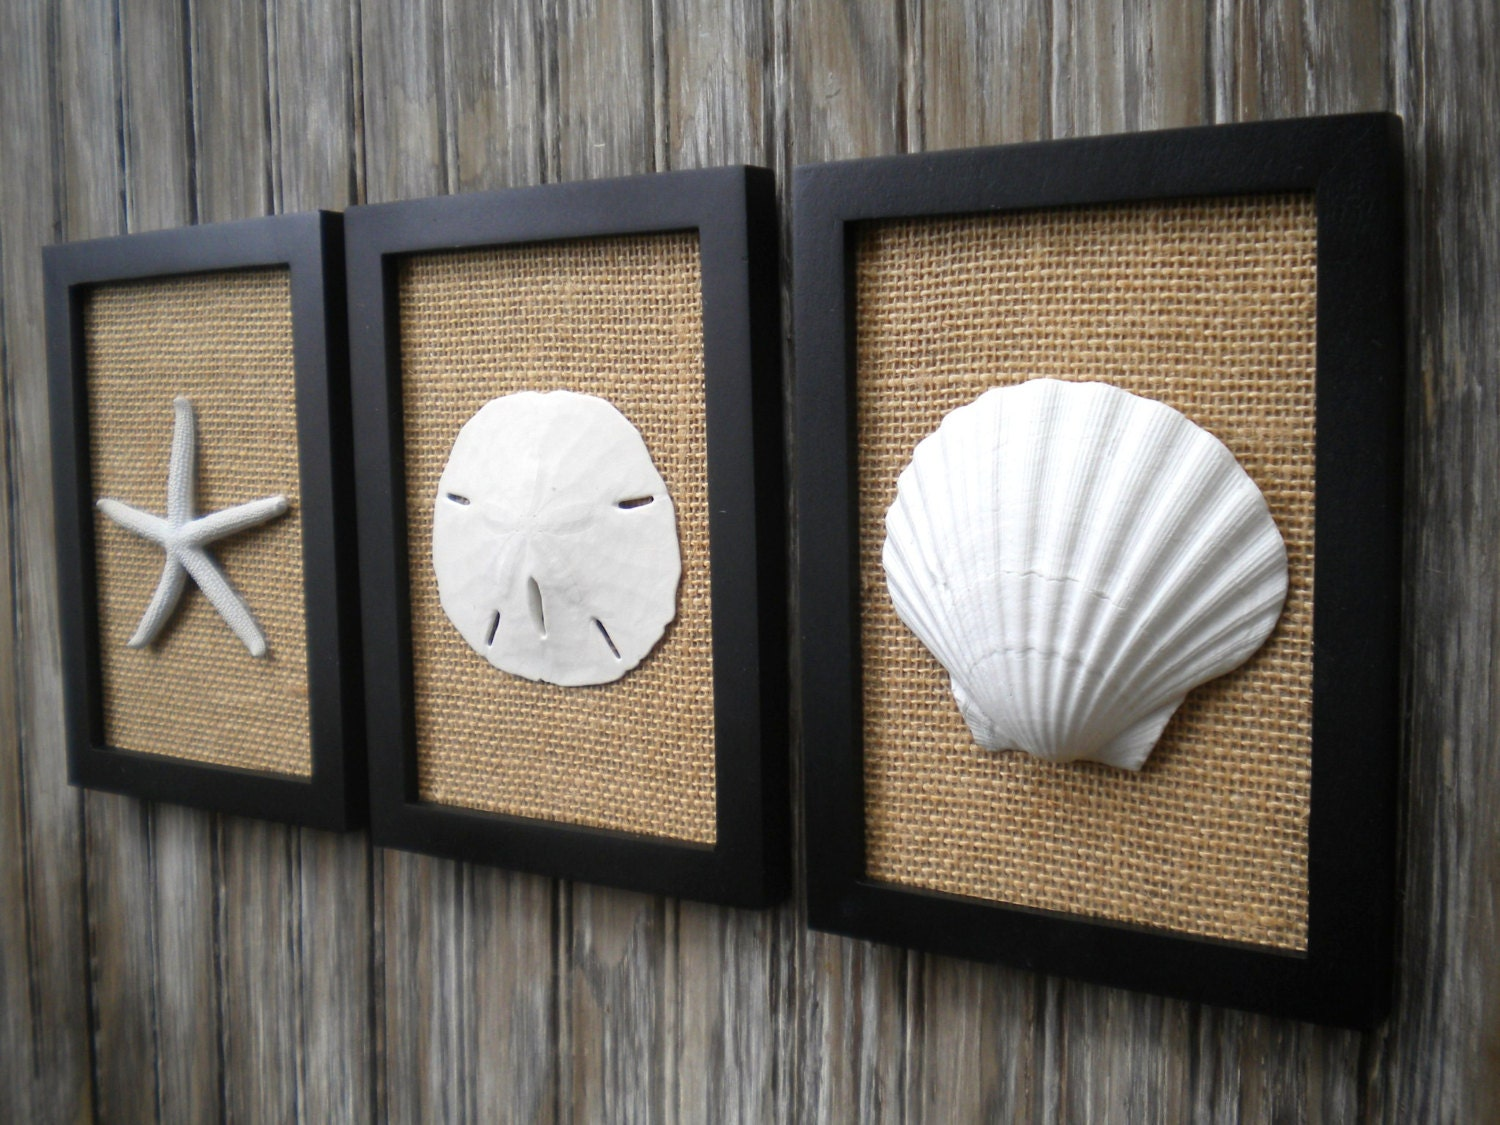 Costal Bathroom Decor: Cottage Chic Set Of Beach Decor Wall Art Bathroom DecorBeach